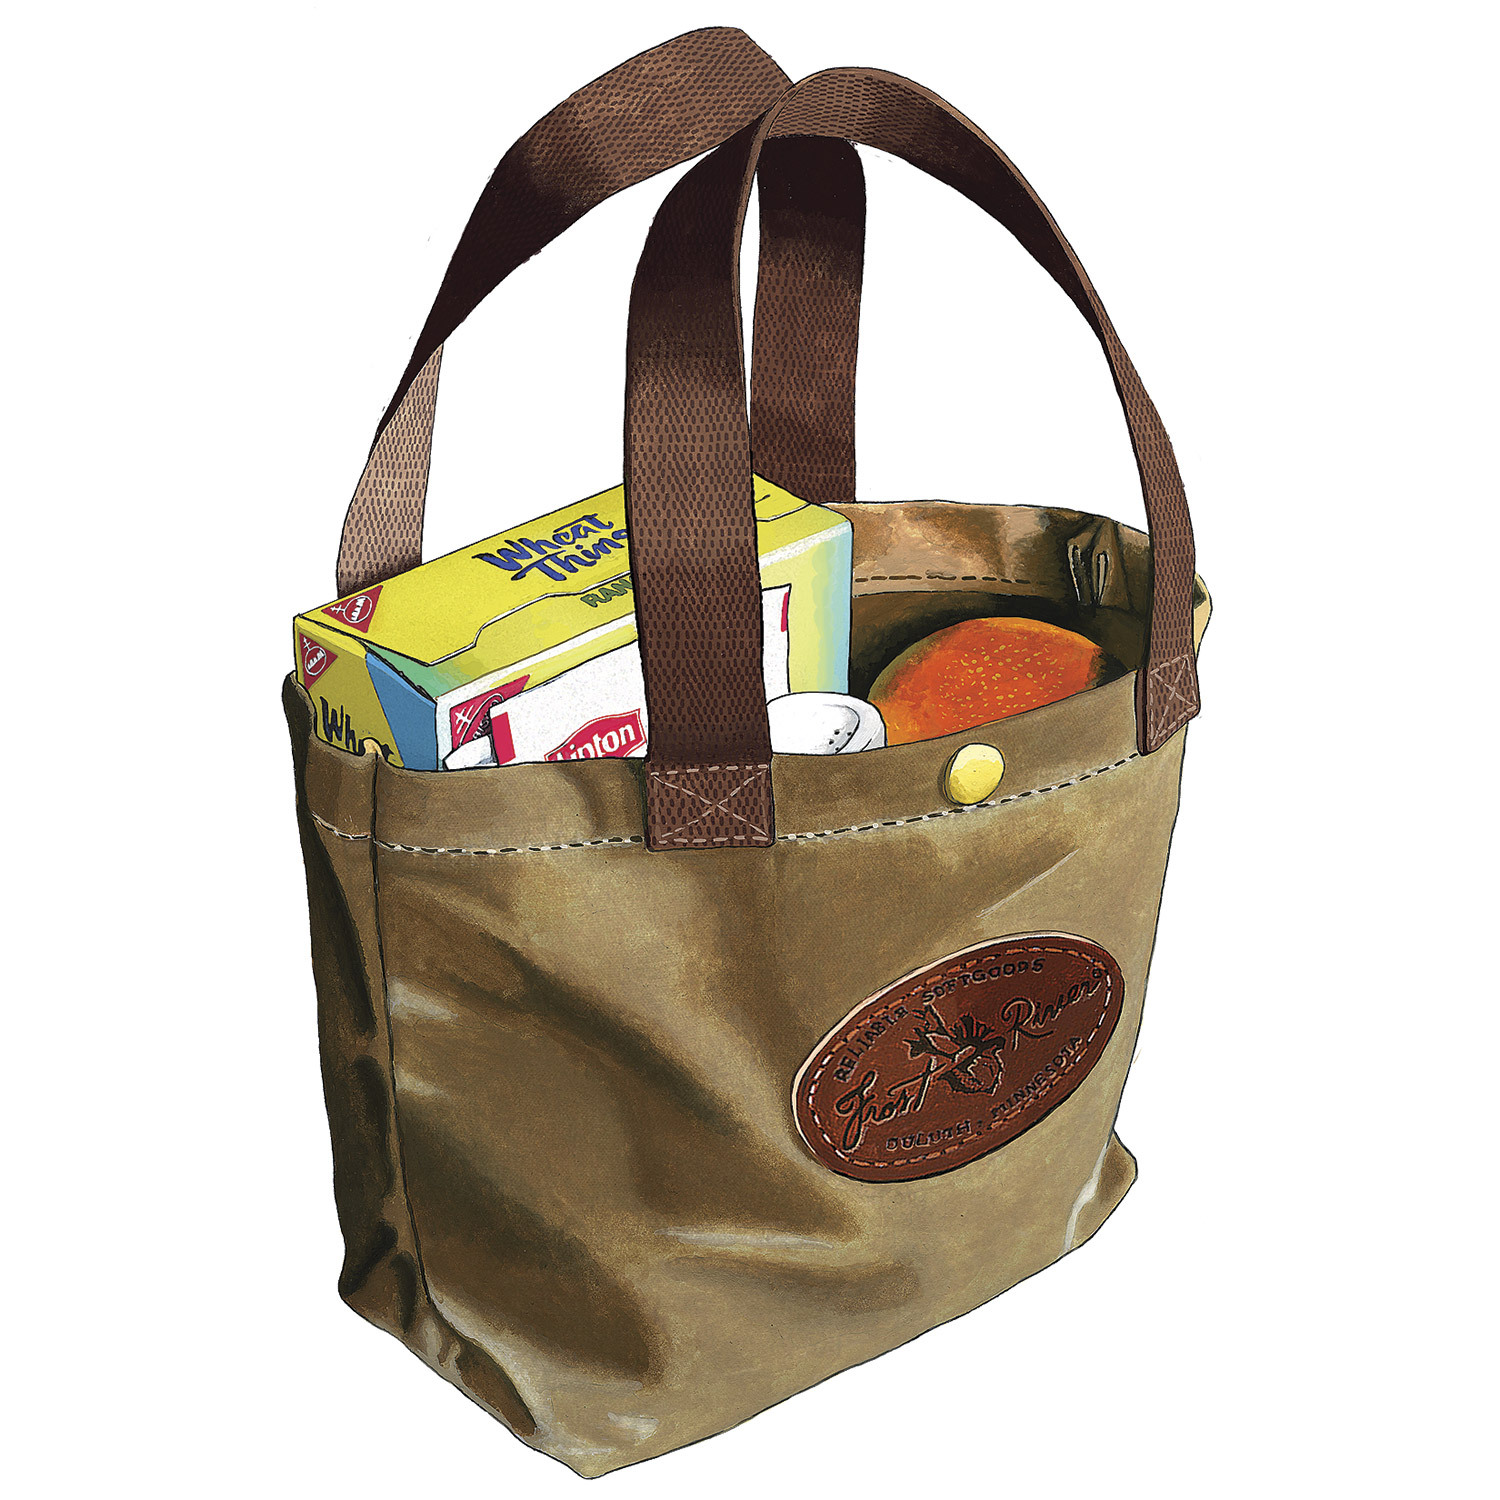 Frost River Lunch Tote Boundary Waters Catalog